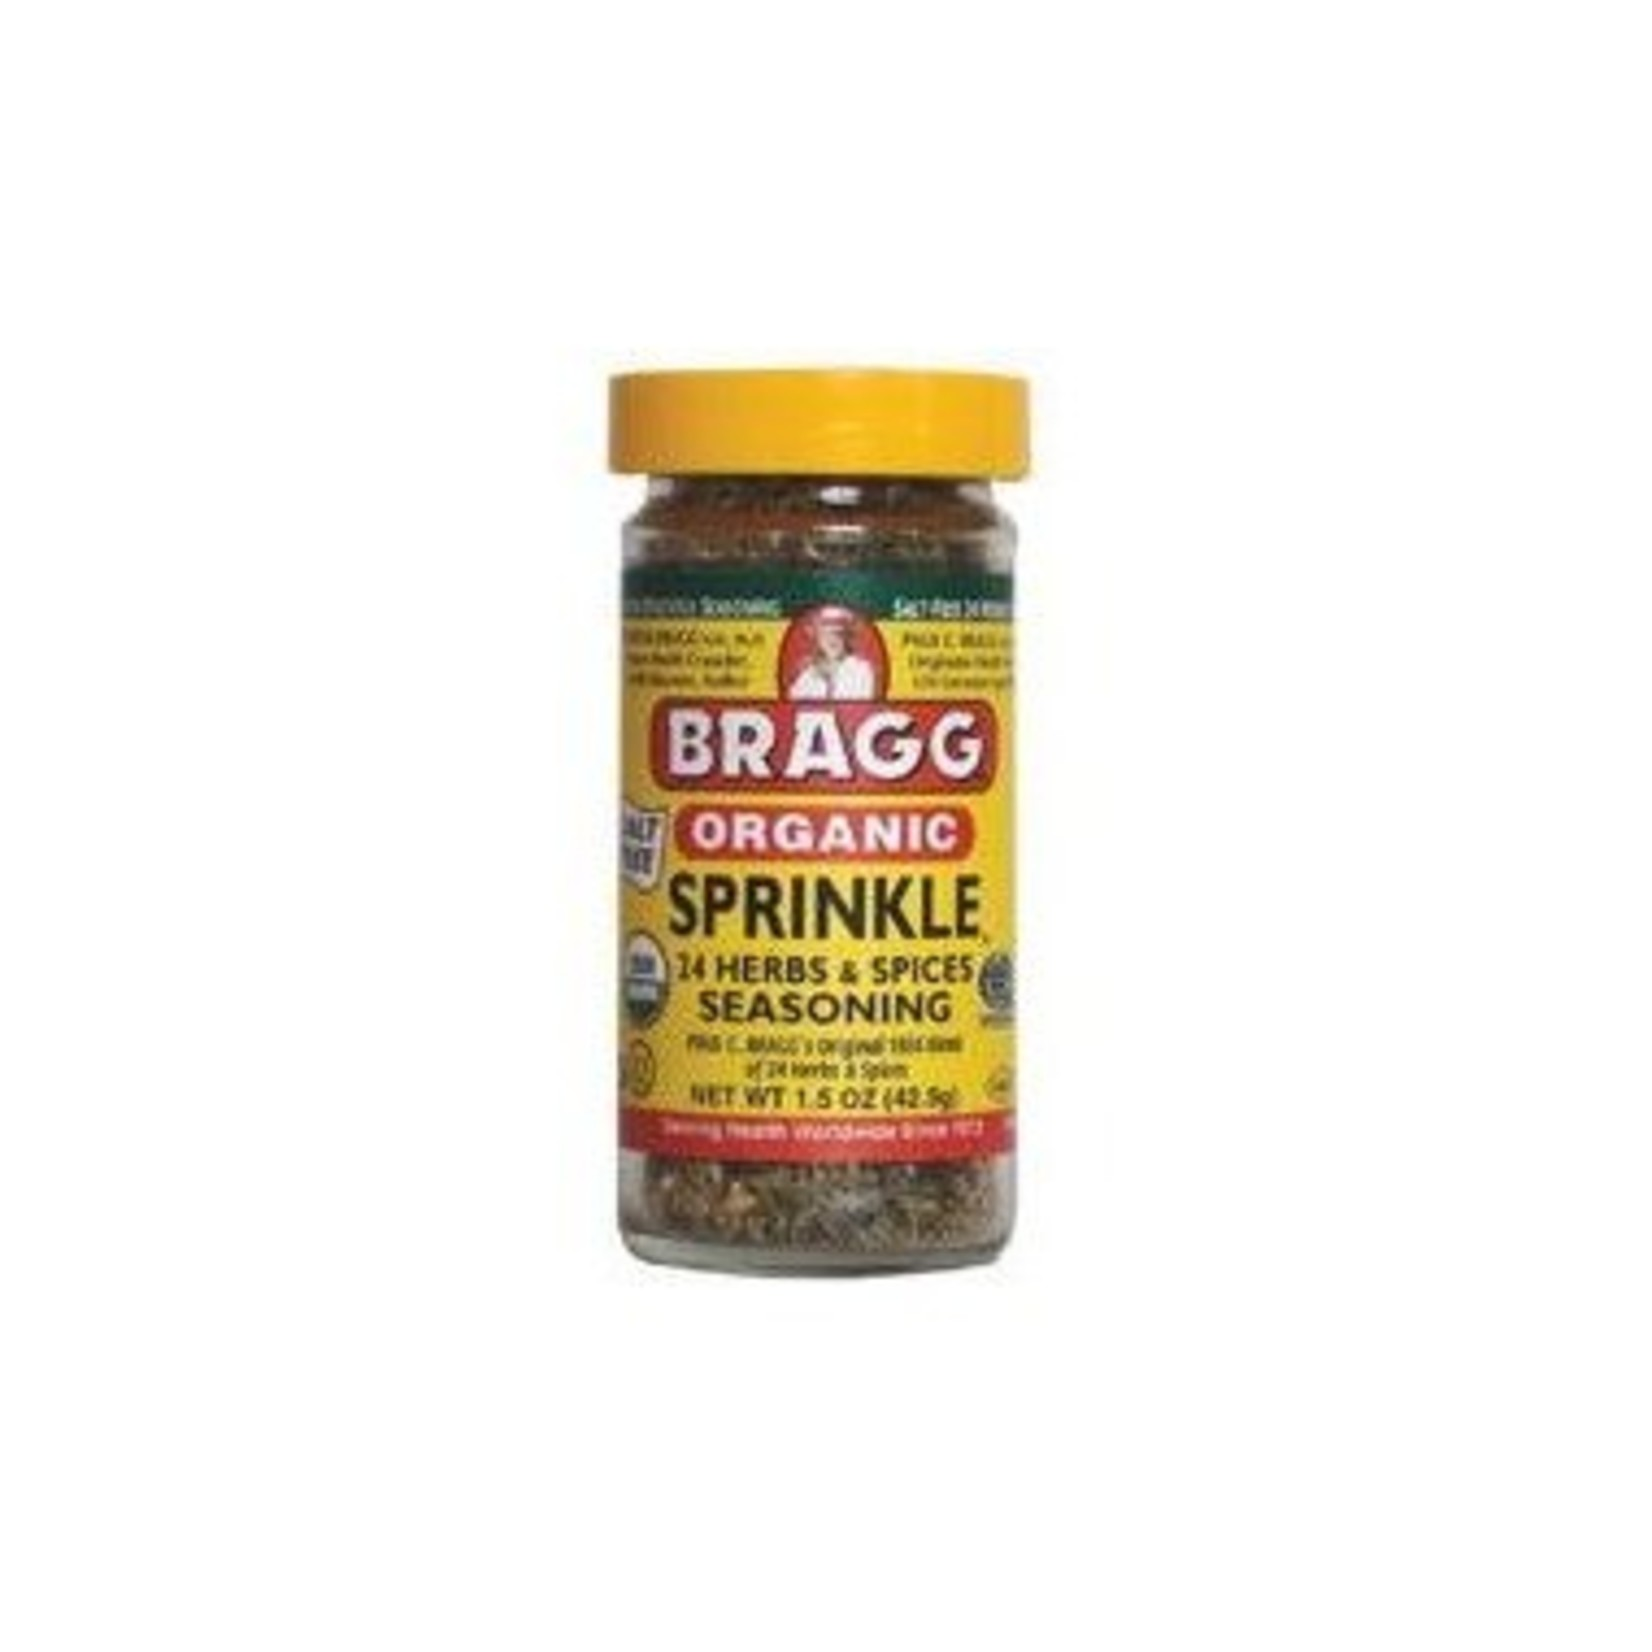 Braggs Organic All Purpose Seasoning- 24 Herbs and Spices 42.5g